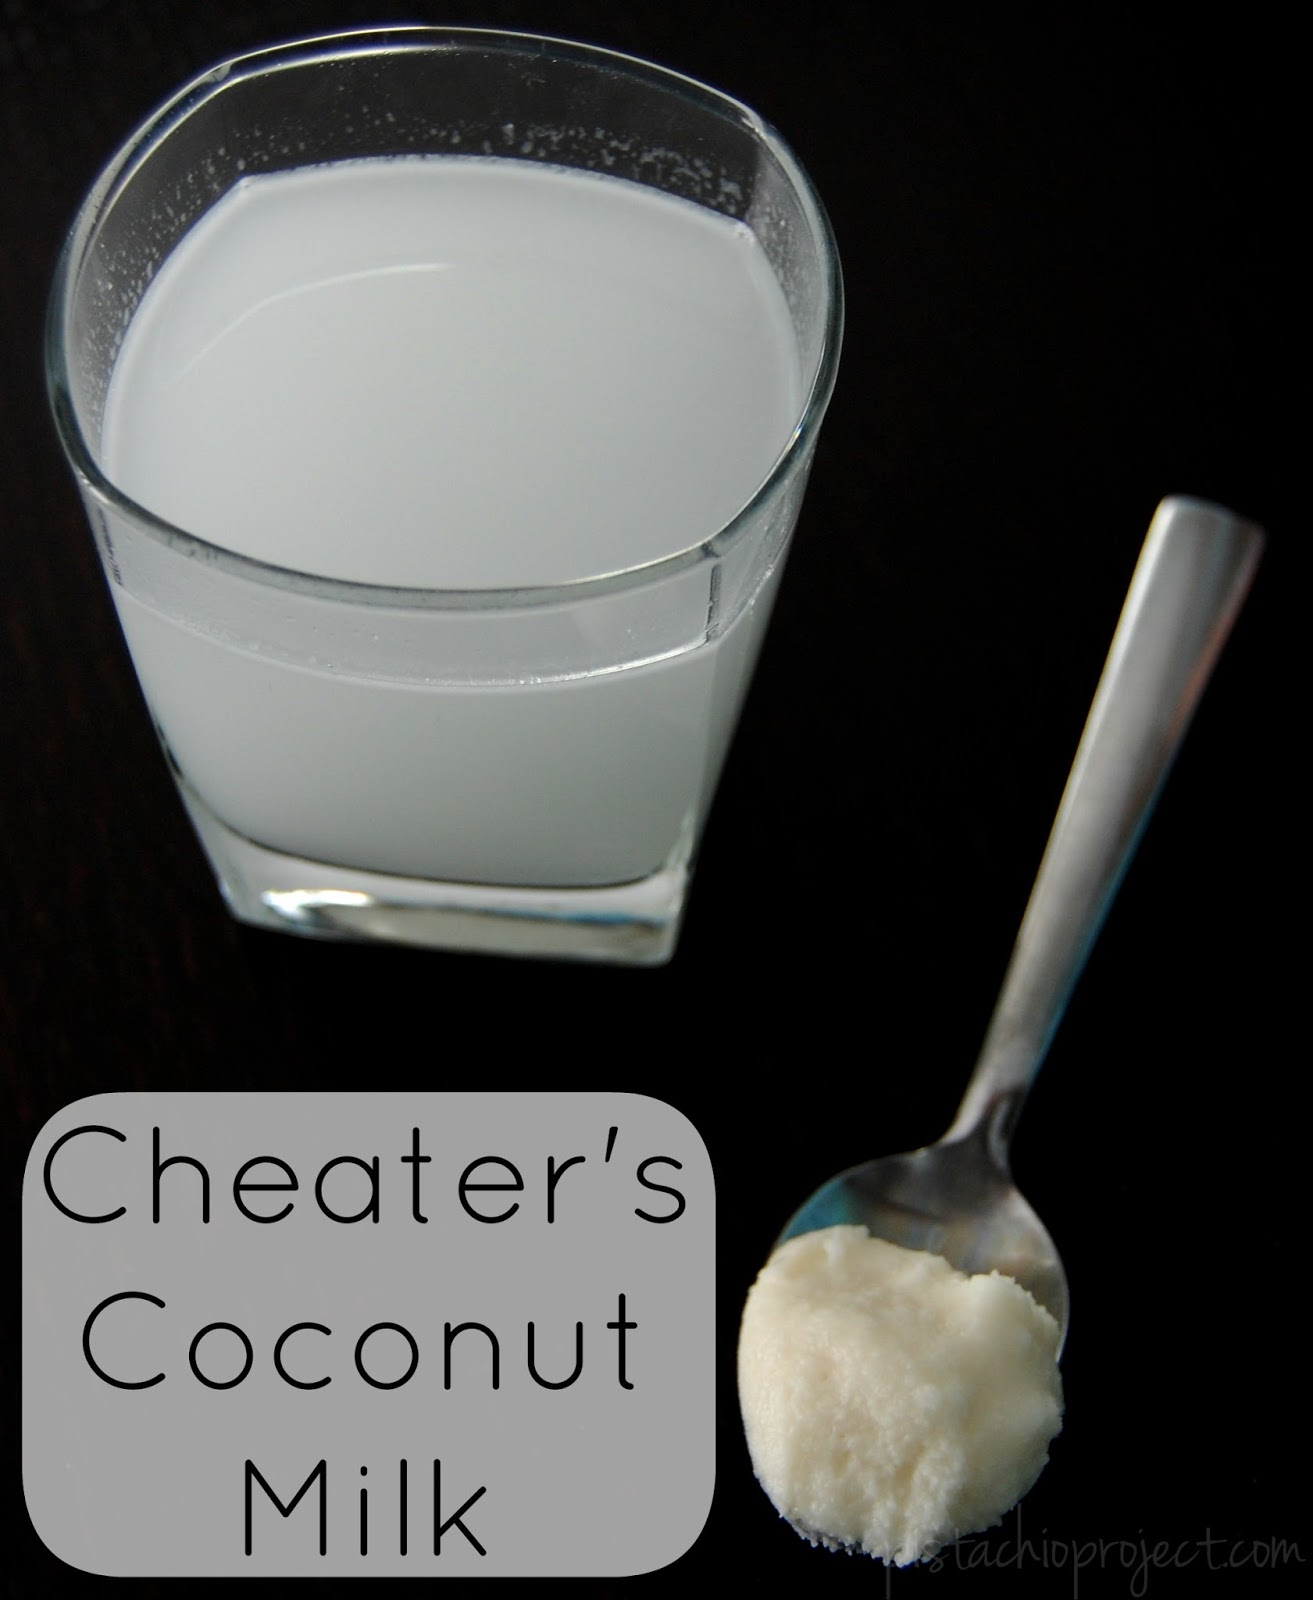 Cheater's Coconut Milk - Coconut milk that you can make in just a few seconds!